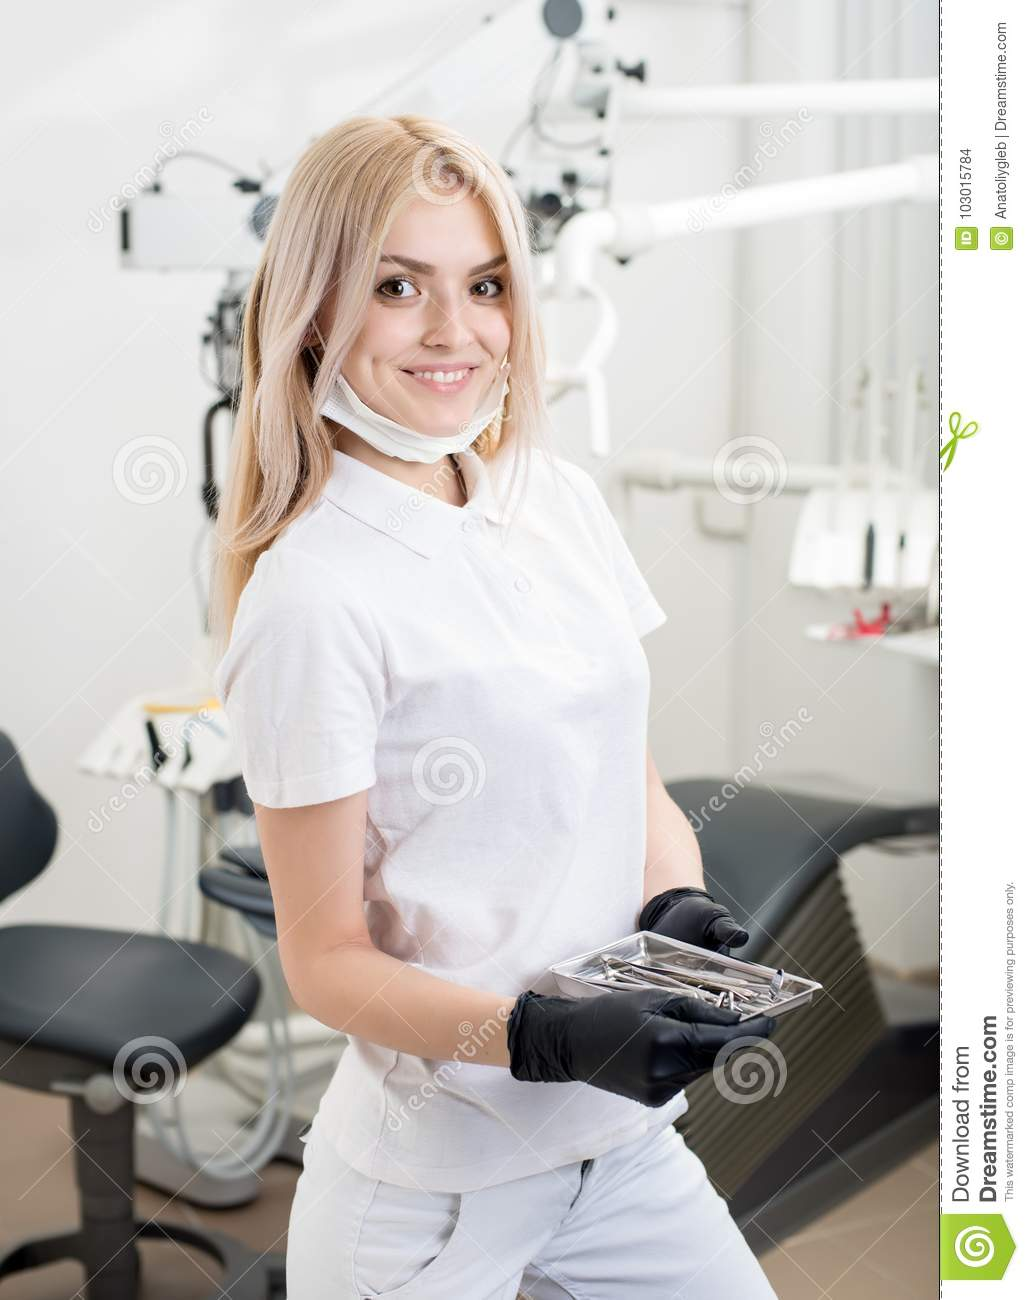 Portrait of young attractive female dentist holding dental tool at the modern dental office